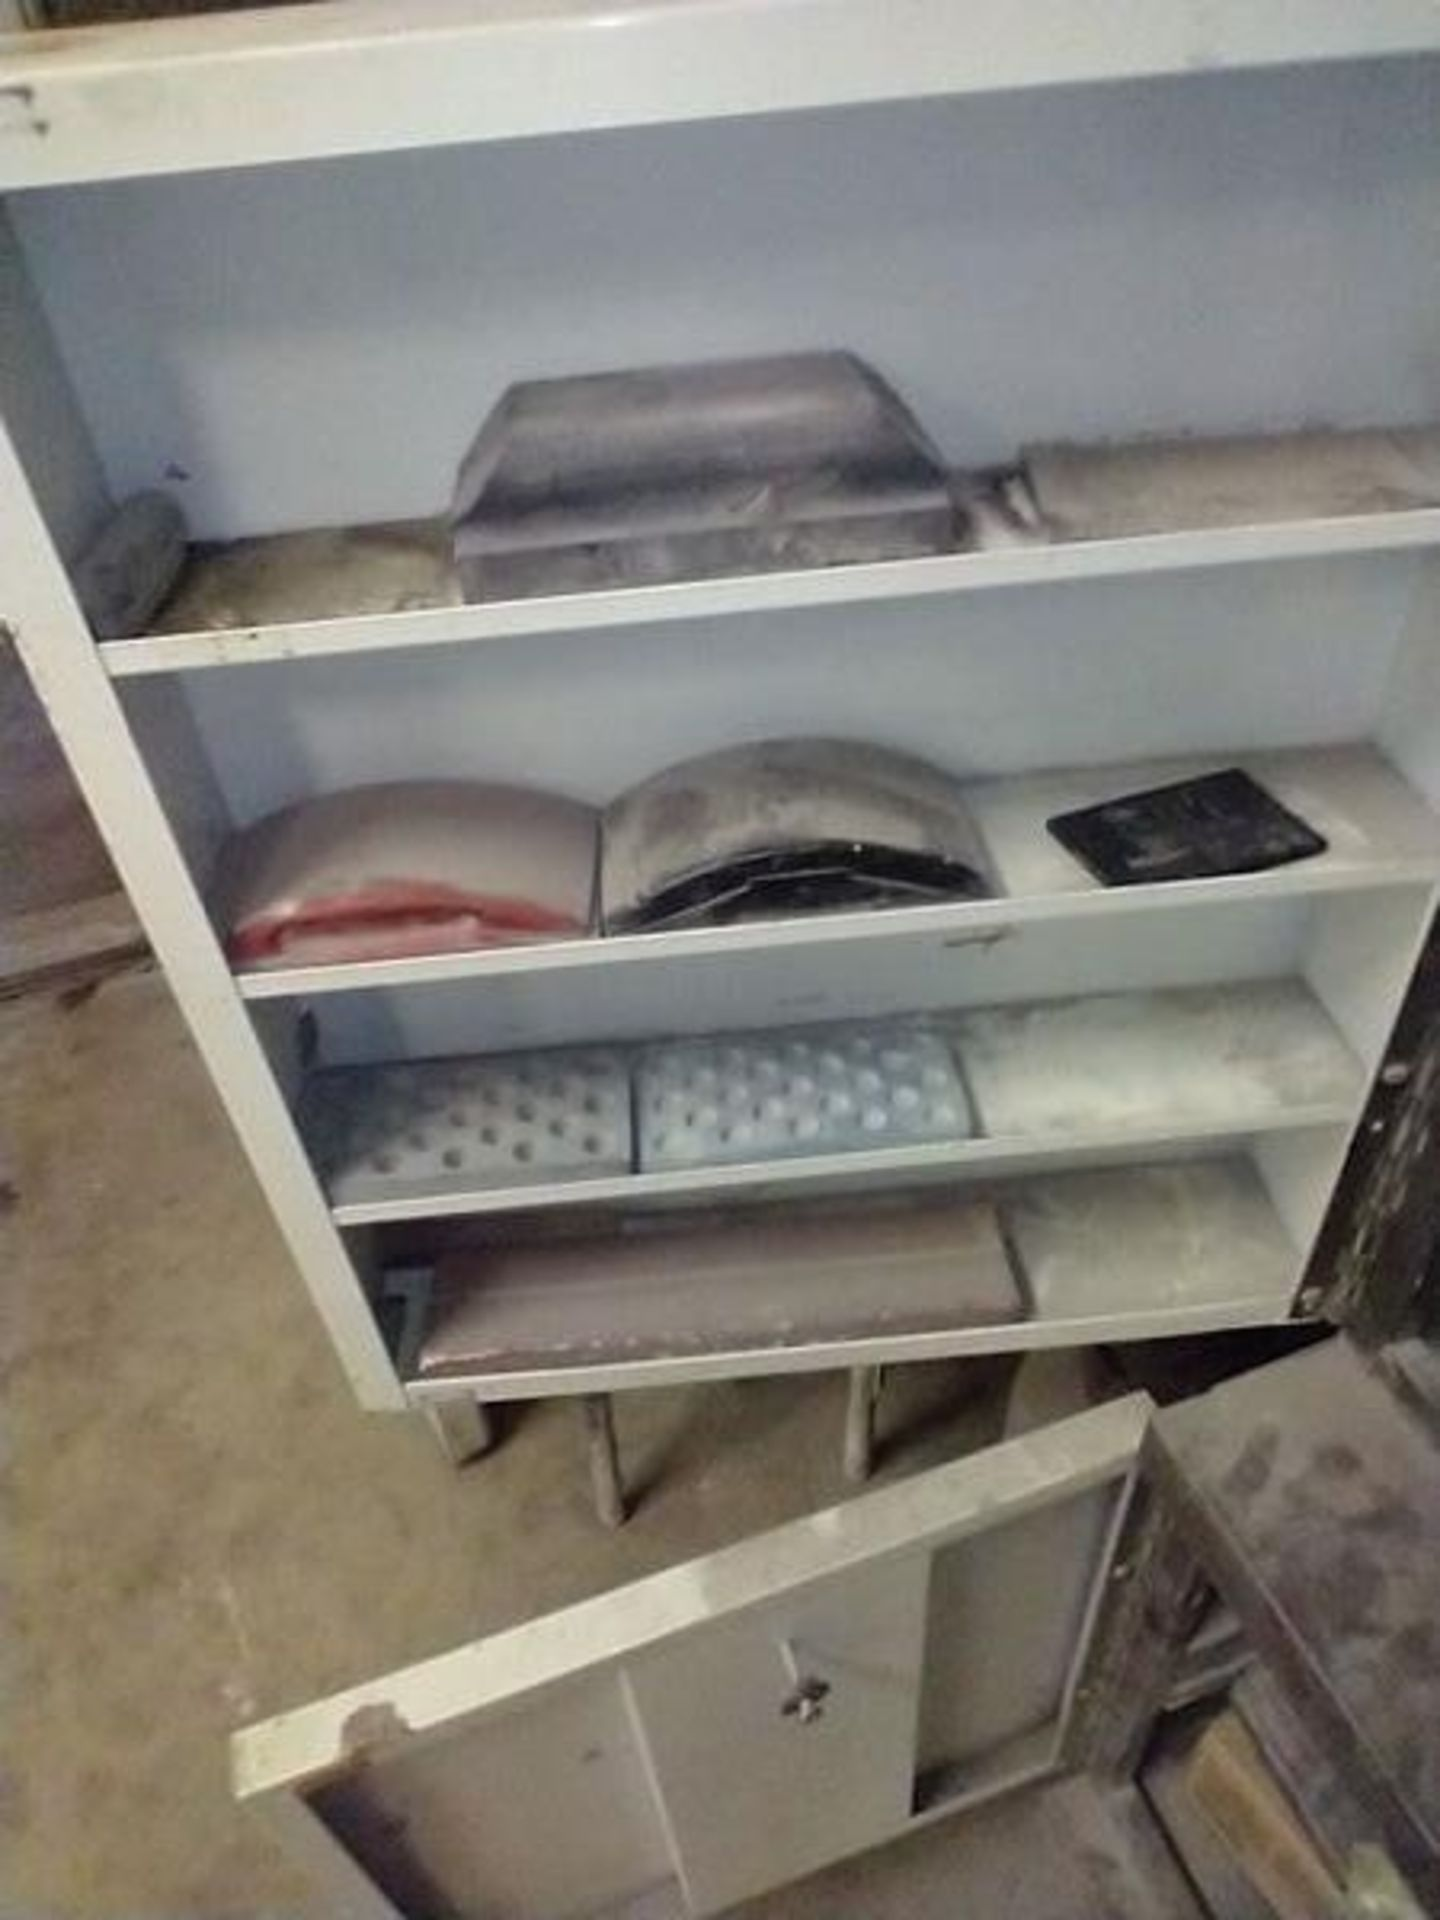 LOT OF ABRASIVE SHEETS, DISCS AND SANDING BLOCKS ON AND INSIDE CABINET (CABINET SOLD SEPARATELY) - Image 2 of 7